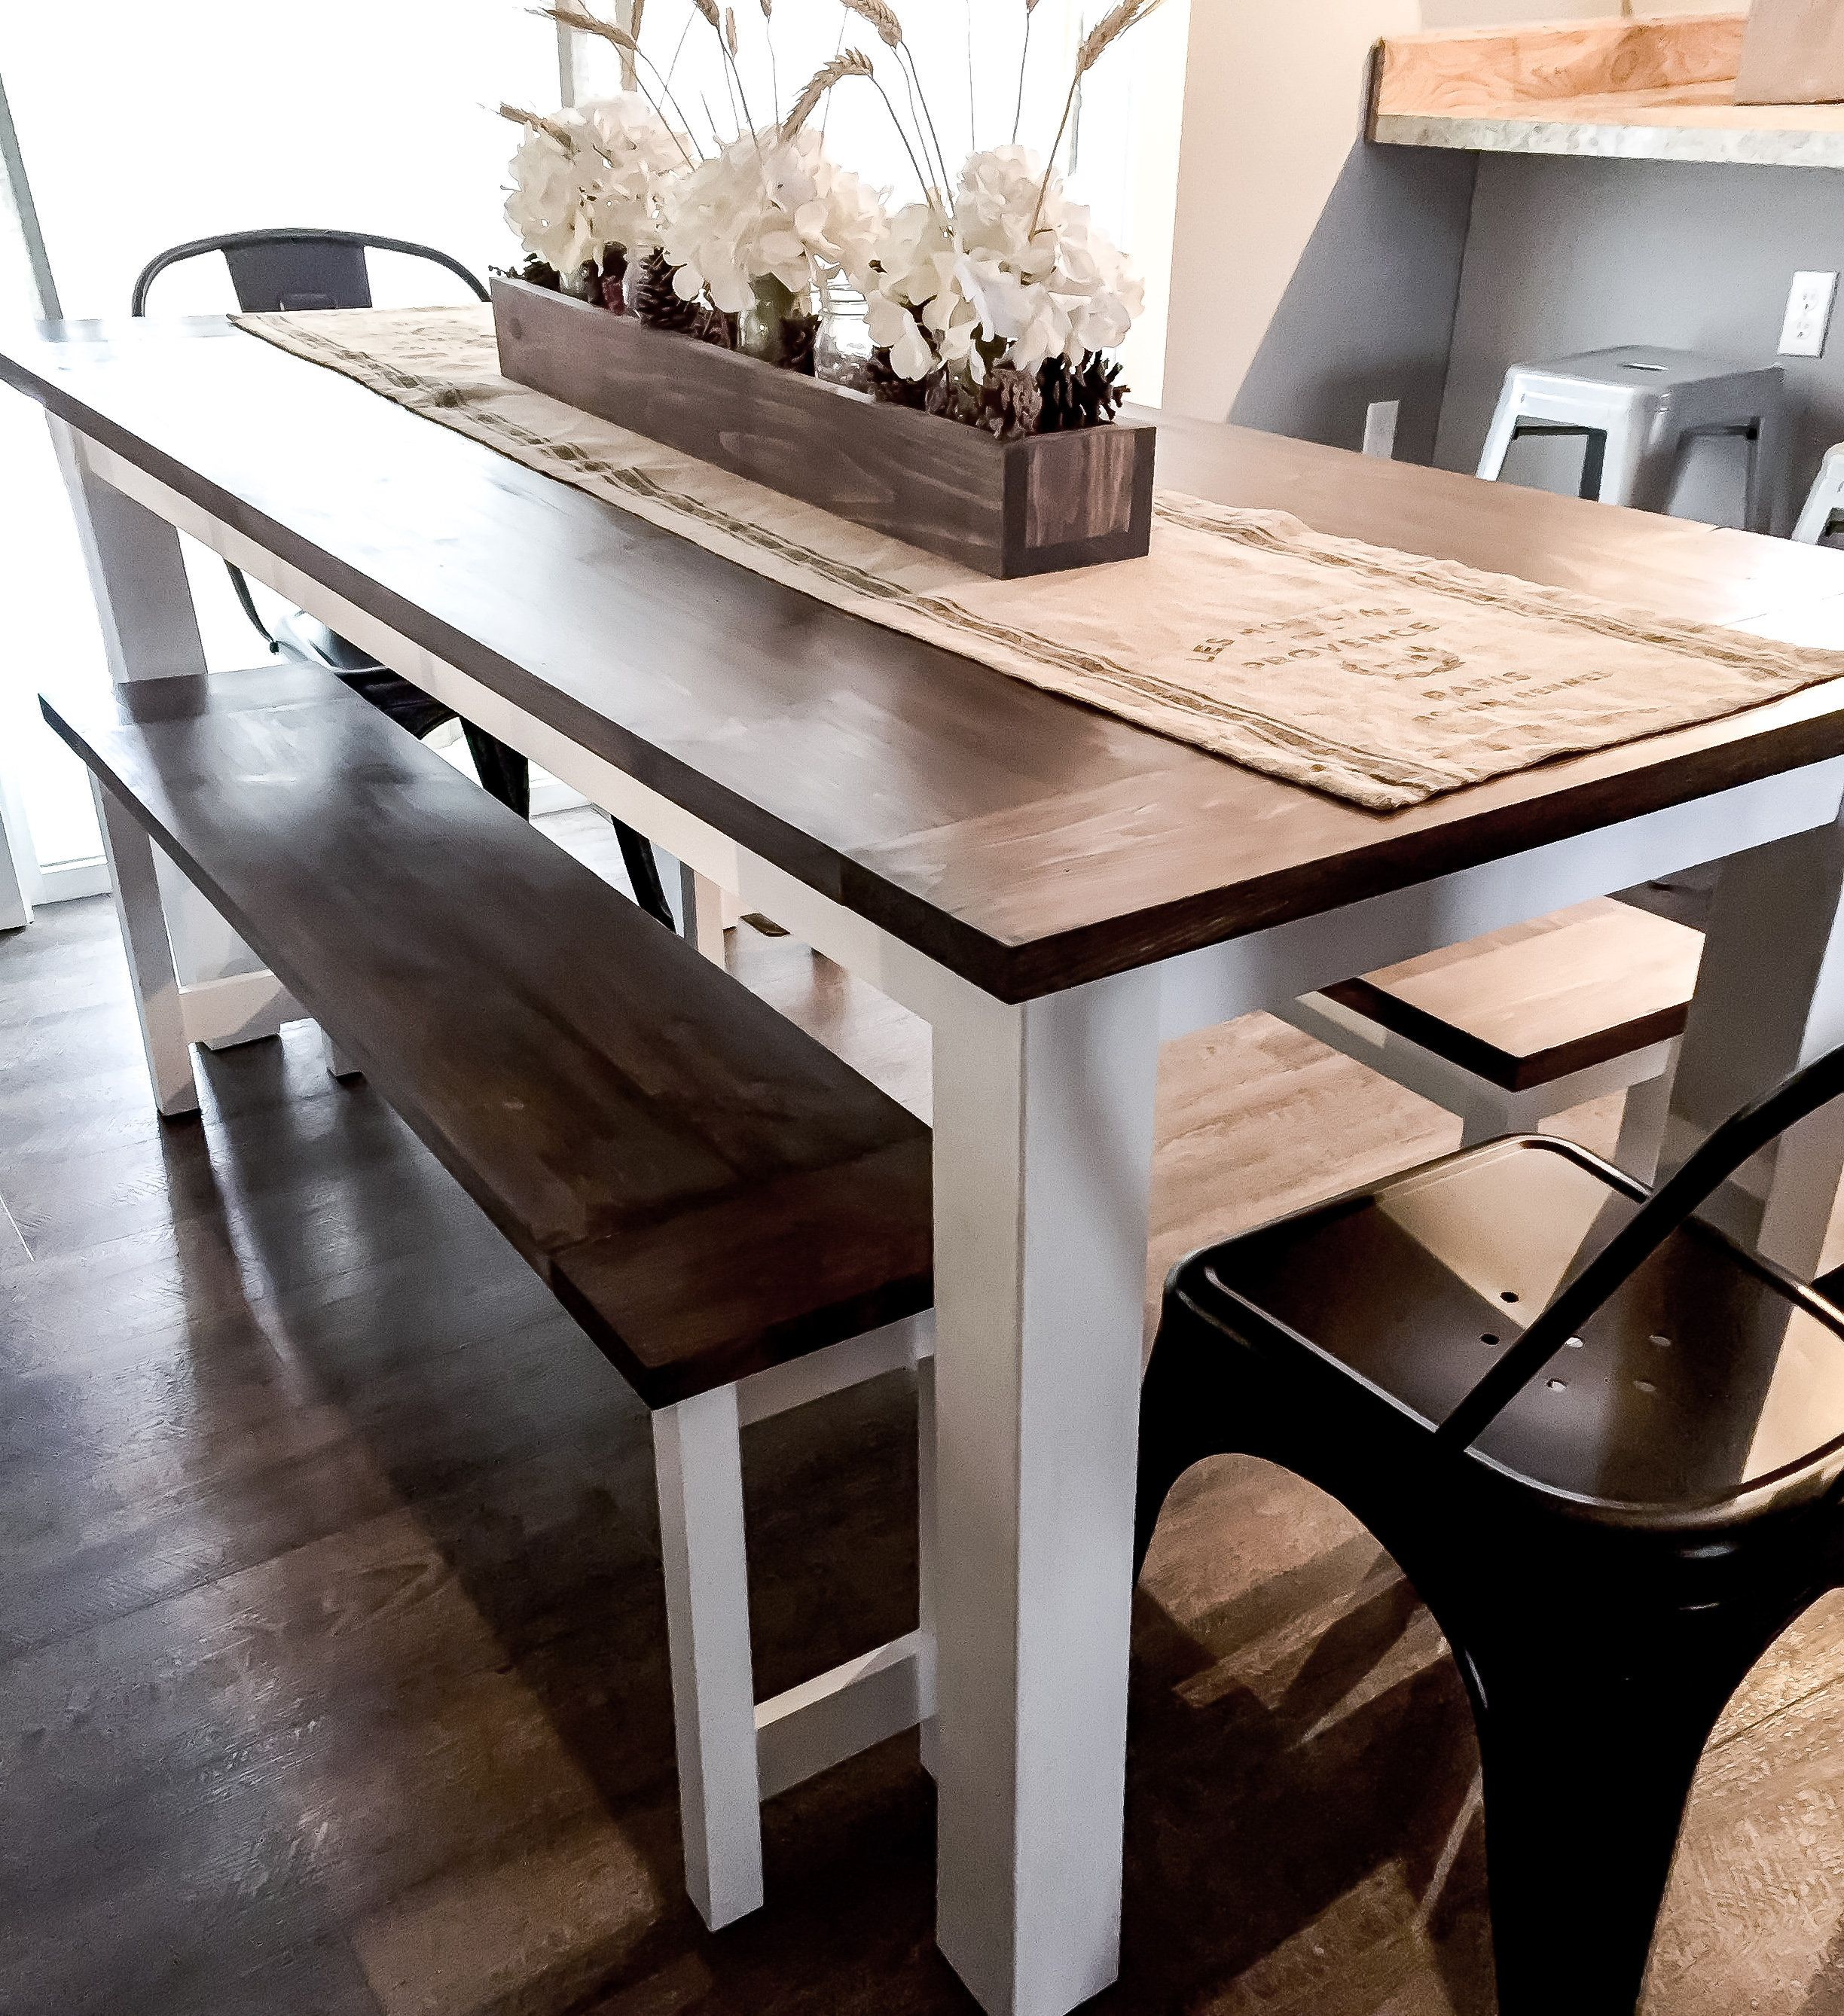 Diy Farmhouse Table Plans With Benches Woodworking Plans Diy